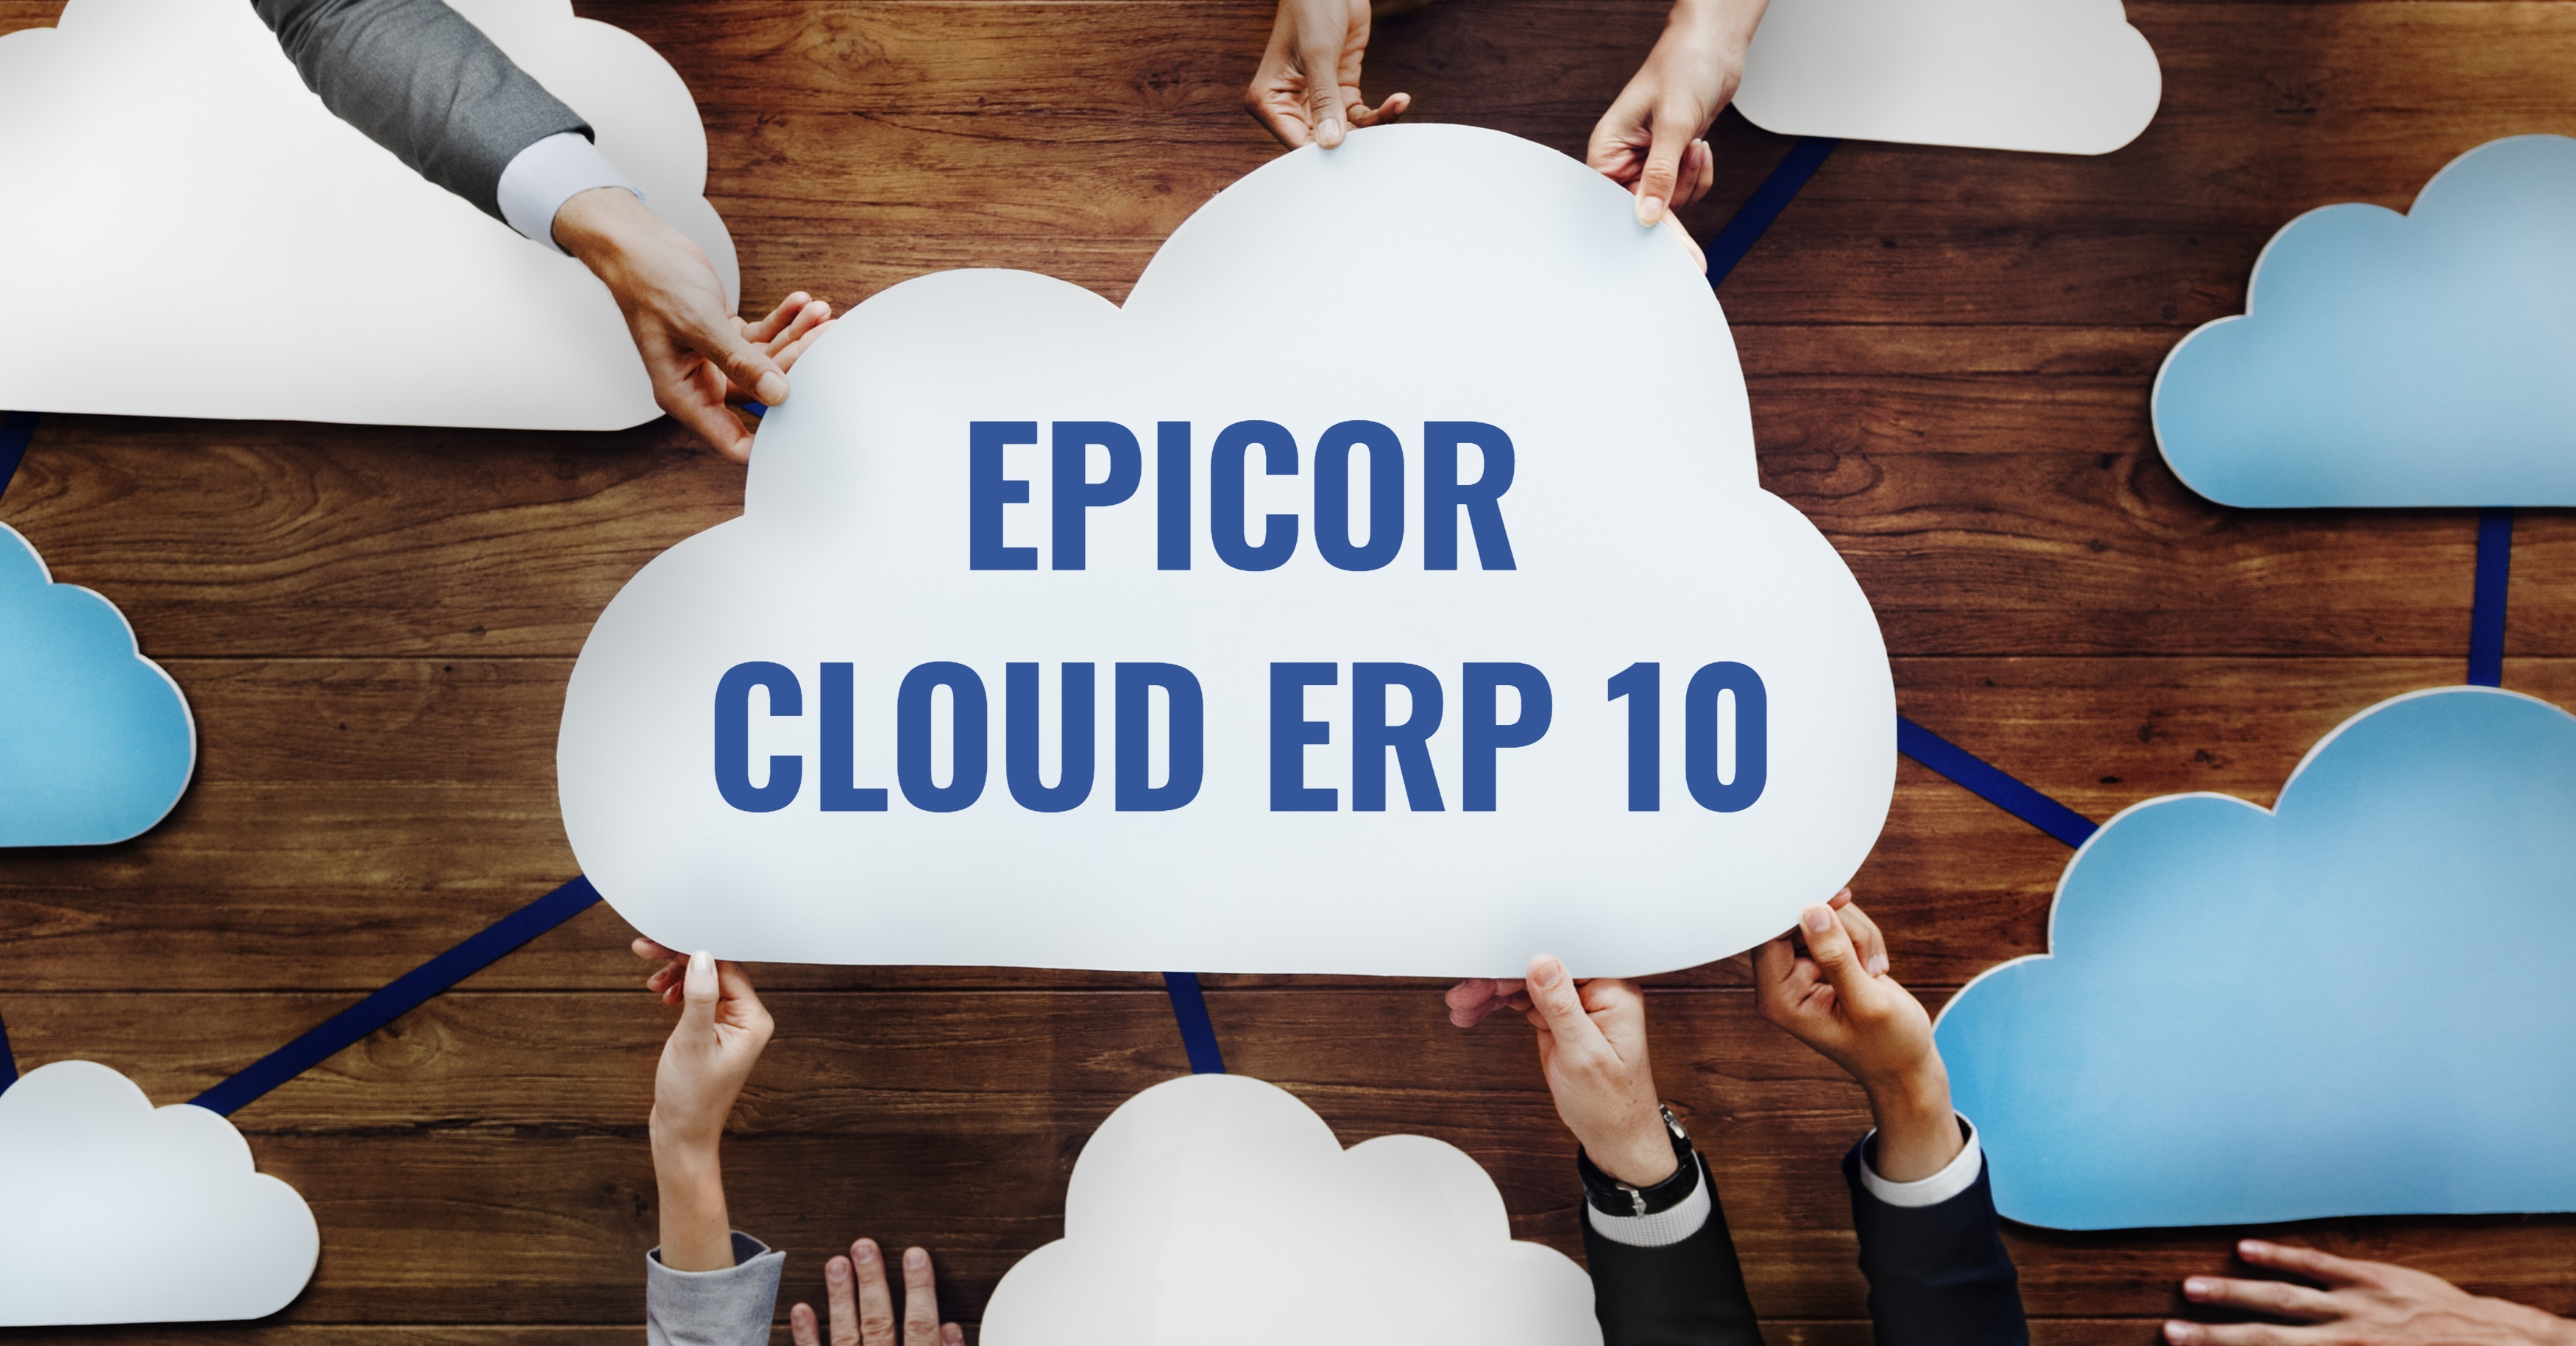 Epicor Cloud ERP 10: The Software Your Business Needs